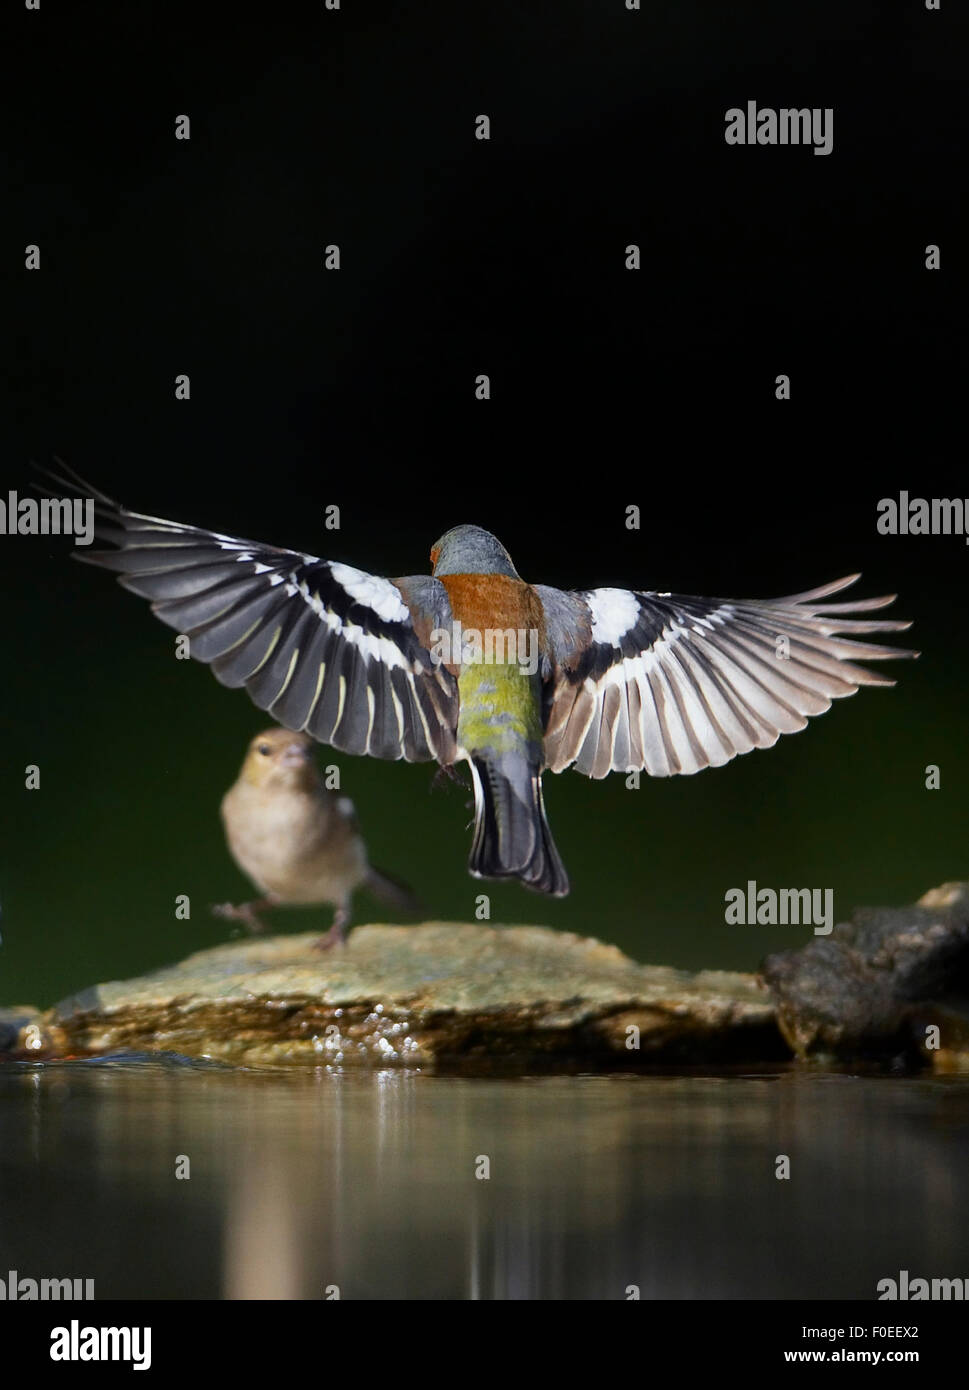 Chaffinch (Fringilla coelebs) male landing at water, Pusztaszer, Hungary, May 2008 - Stock Image